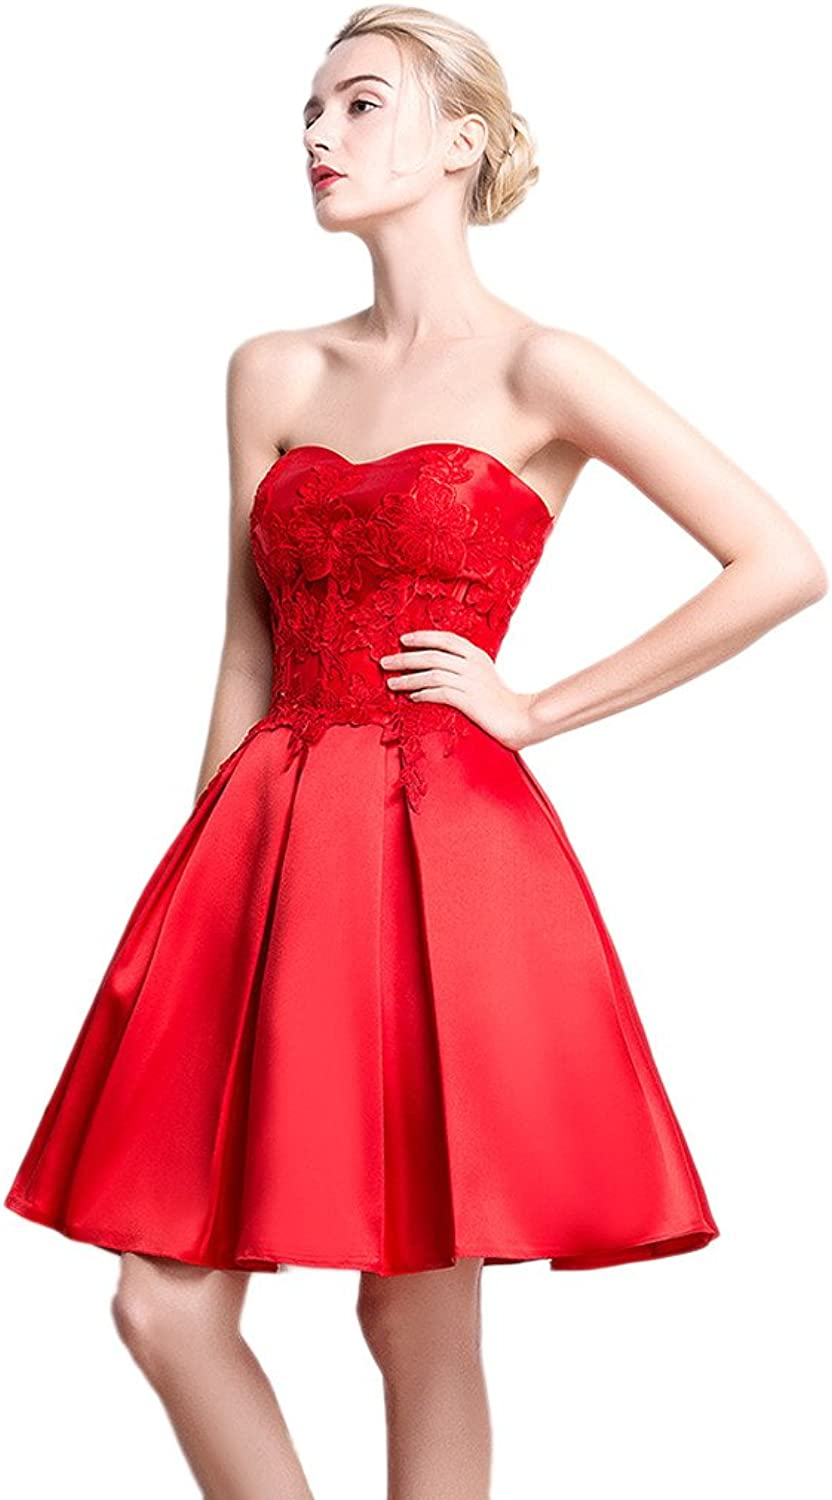 Vimans Women's Elegant Knee Length Red Sweetheart Lace Bridesmaid Dresses